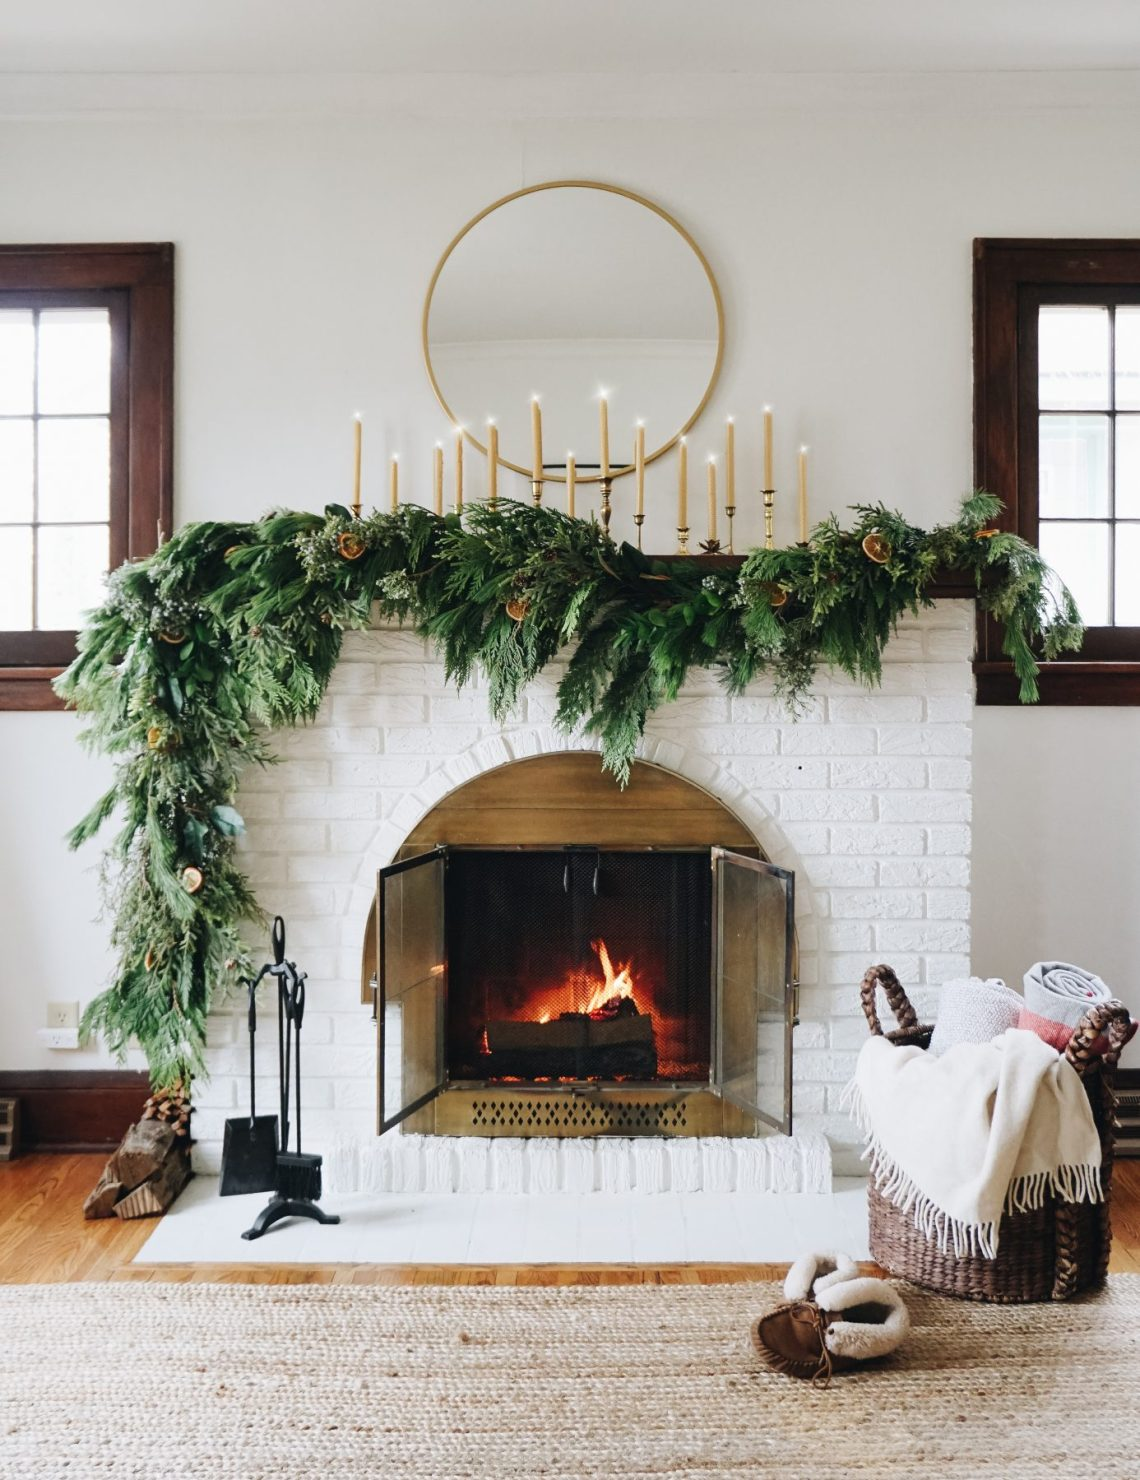 Asymmetrical garland: an unexpected take on traditional Holiday fireplace mantel decor. Hear my thought process and how to create the look at your house.